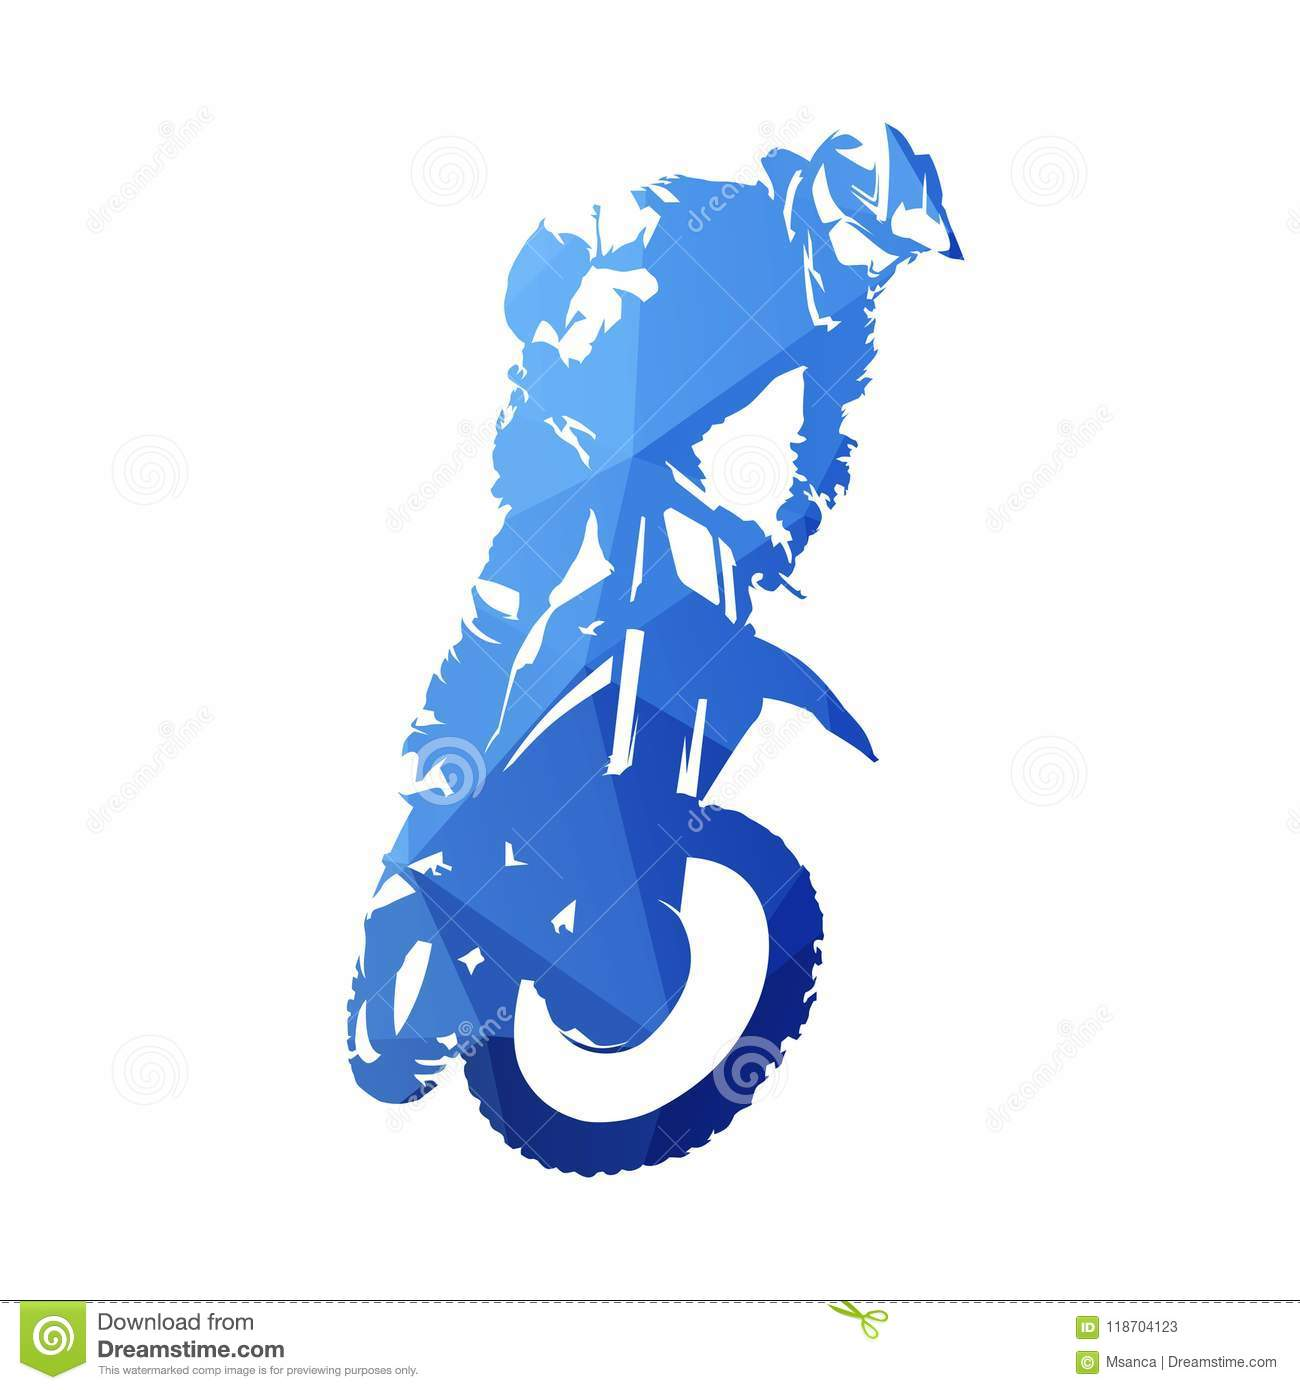 Freestyle Motocross Fmx Abstract Blue Geometric Vector Silhouette Stock Vector Illustration Of Motorcycle Ride 118704123